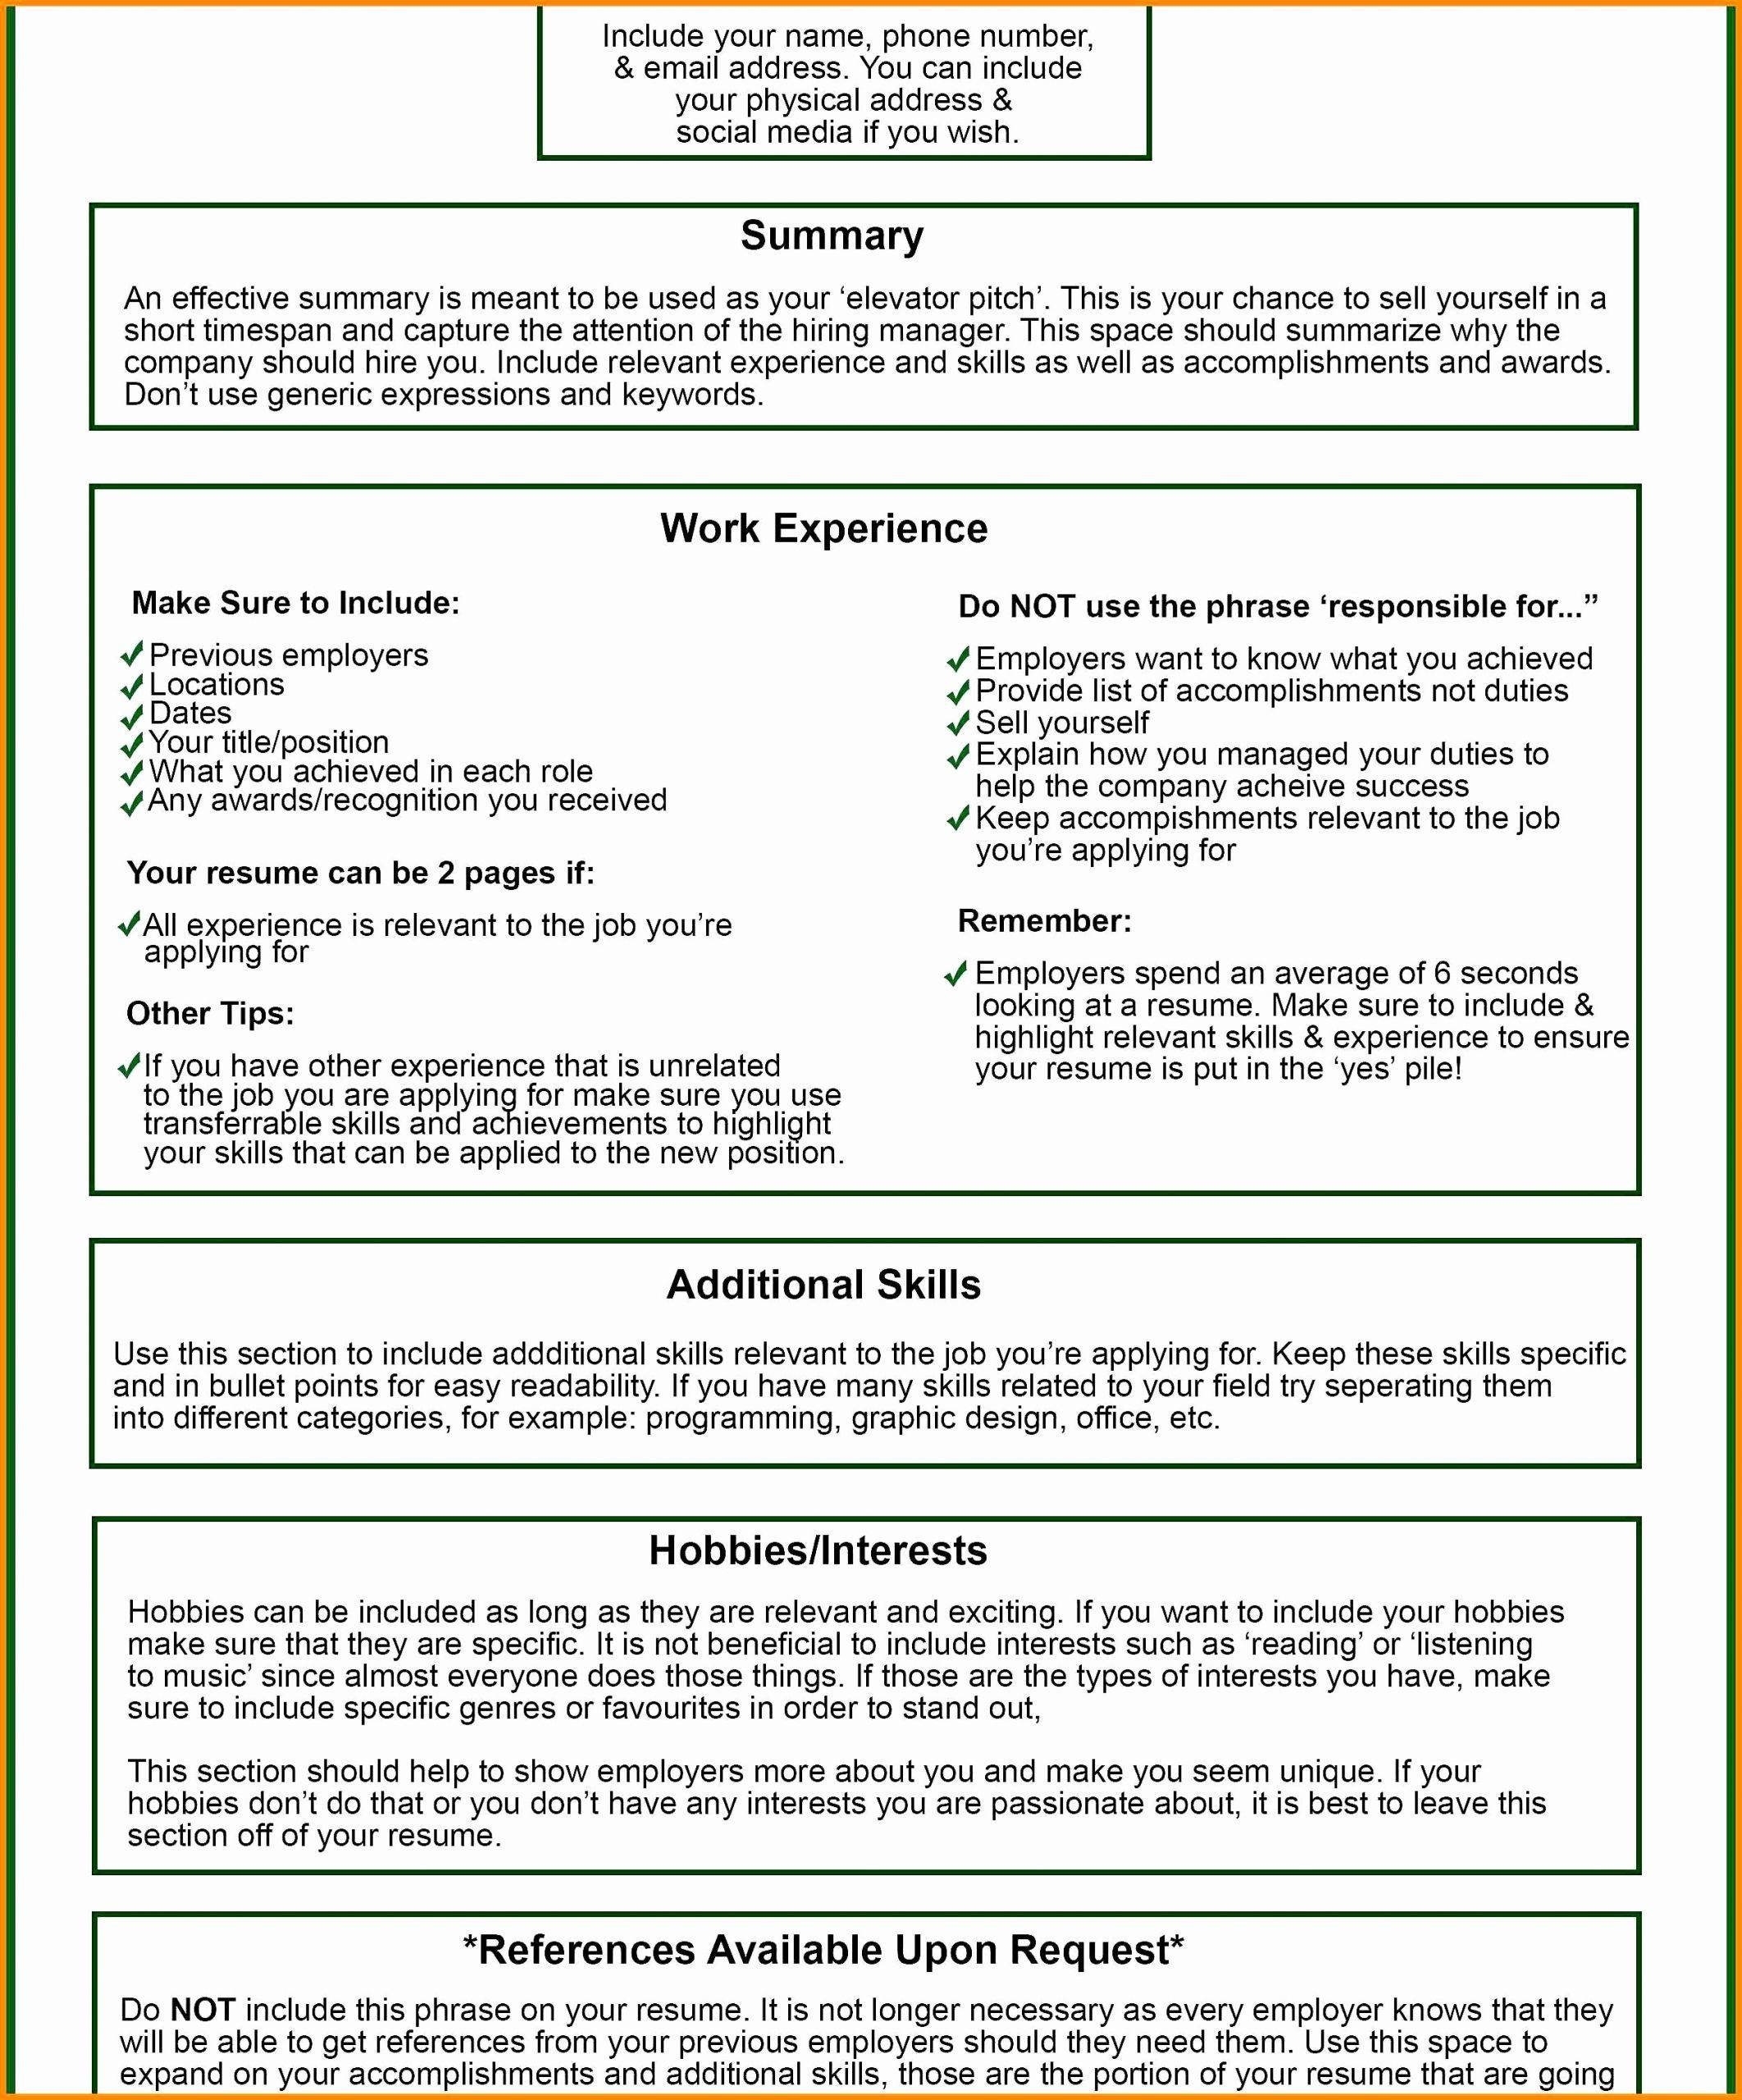 template for letter of interest luxury resumes hobbies and interests examples cv cover in Resume Relevant Interests For Resume